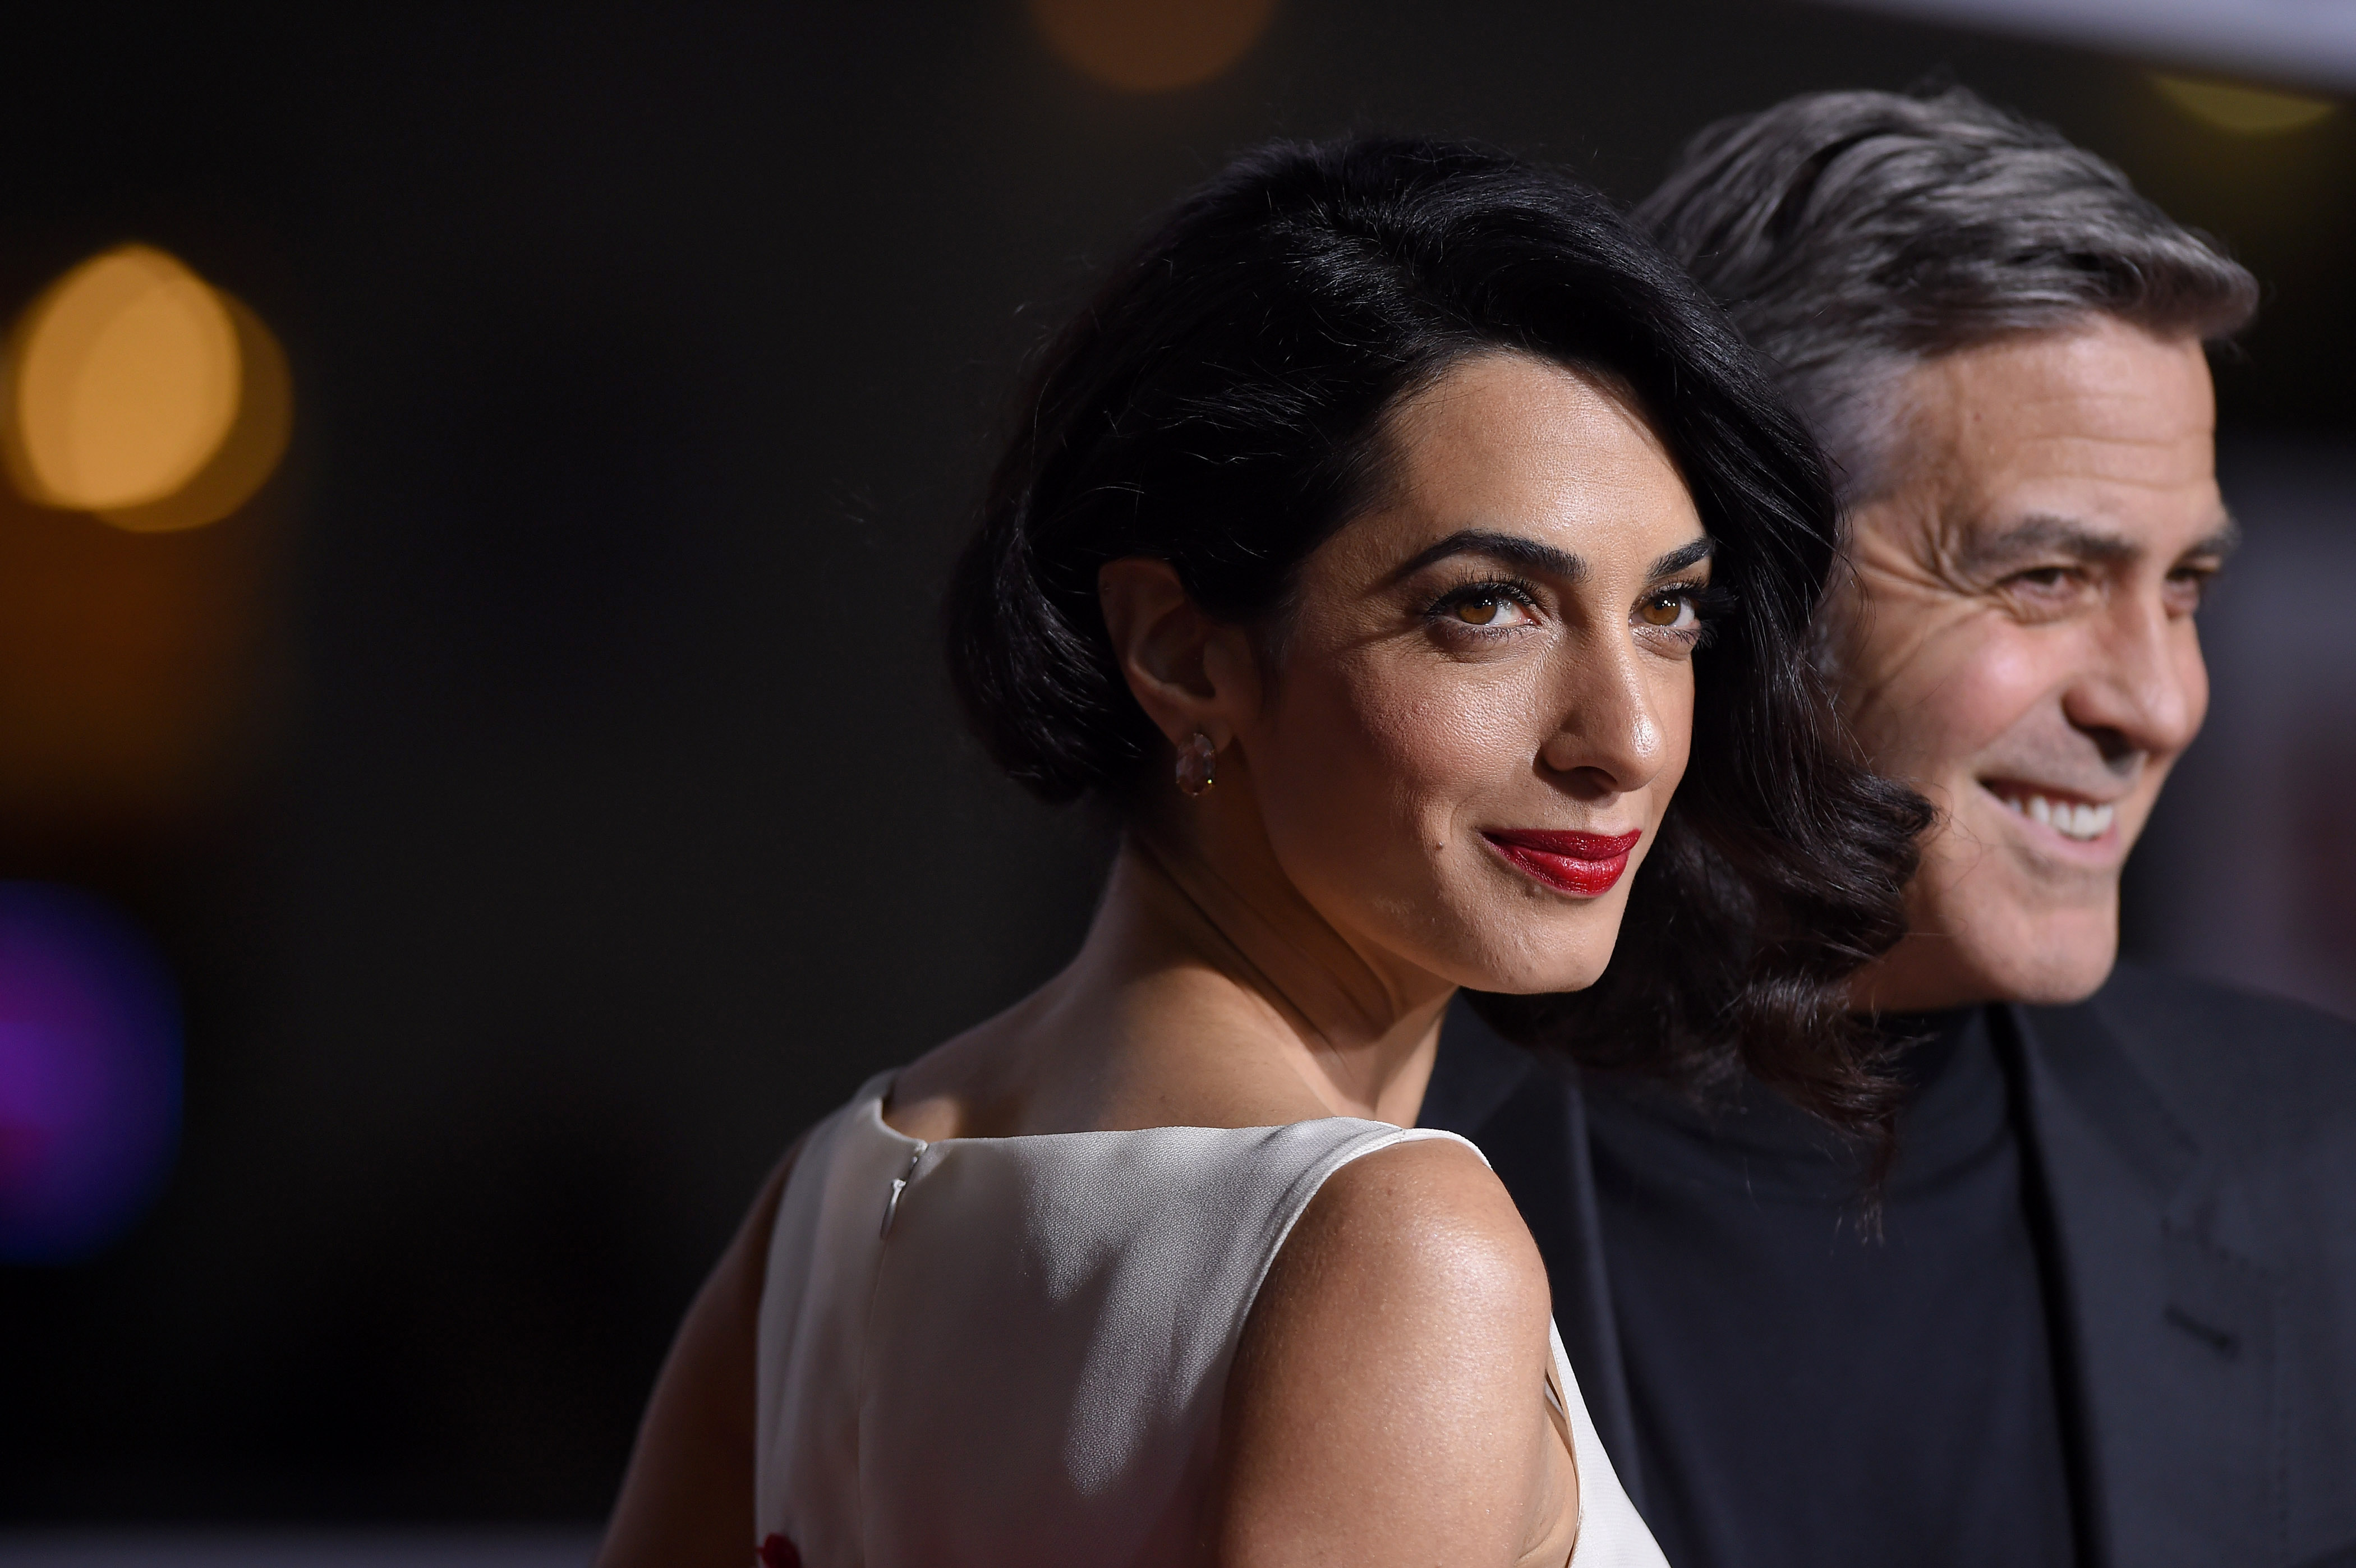 Lawyer Amal Clooney and actor George Clooney arrive at the premiere of Hail, Caesar! at Regency Village Theatre on Feb. 1, 2016, in Westwood, Calif.